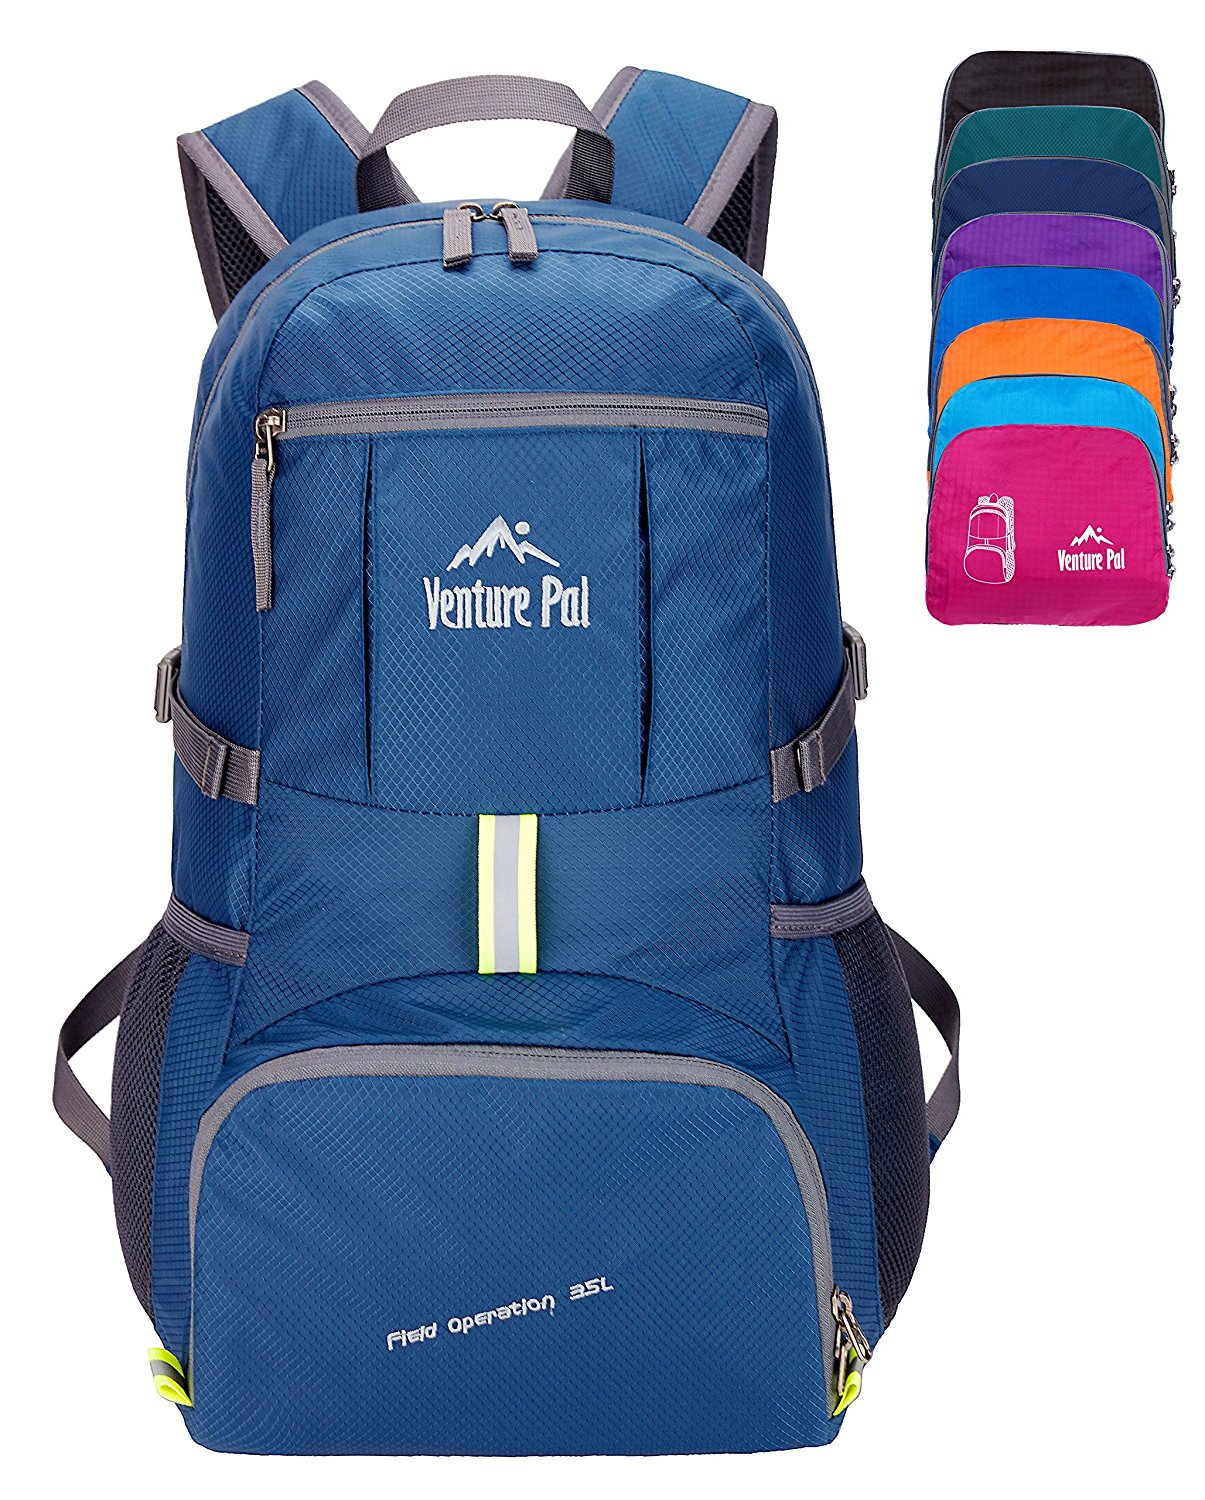 Review of the Best Travel Backpack—Venture Pal Lightweight Packable Durable Backpack for Travel, Hiking and Daypack